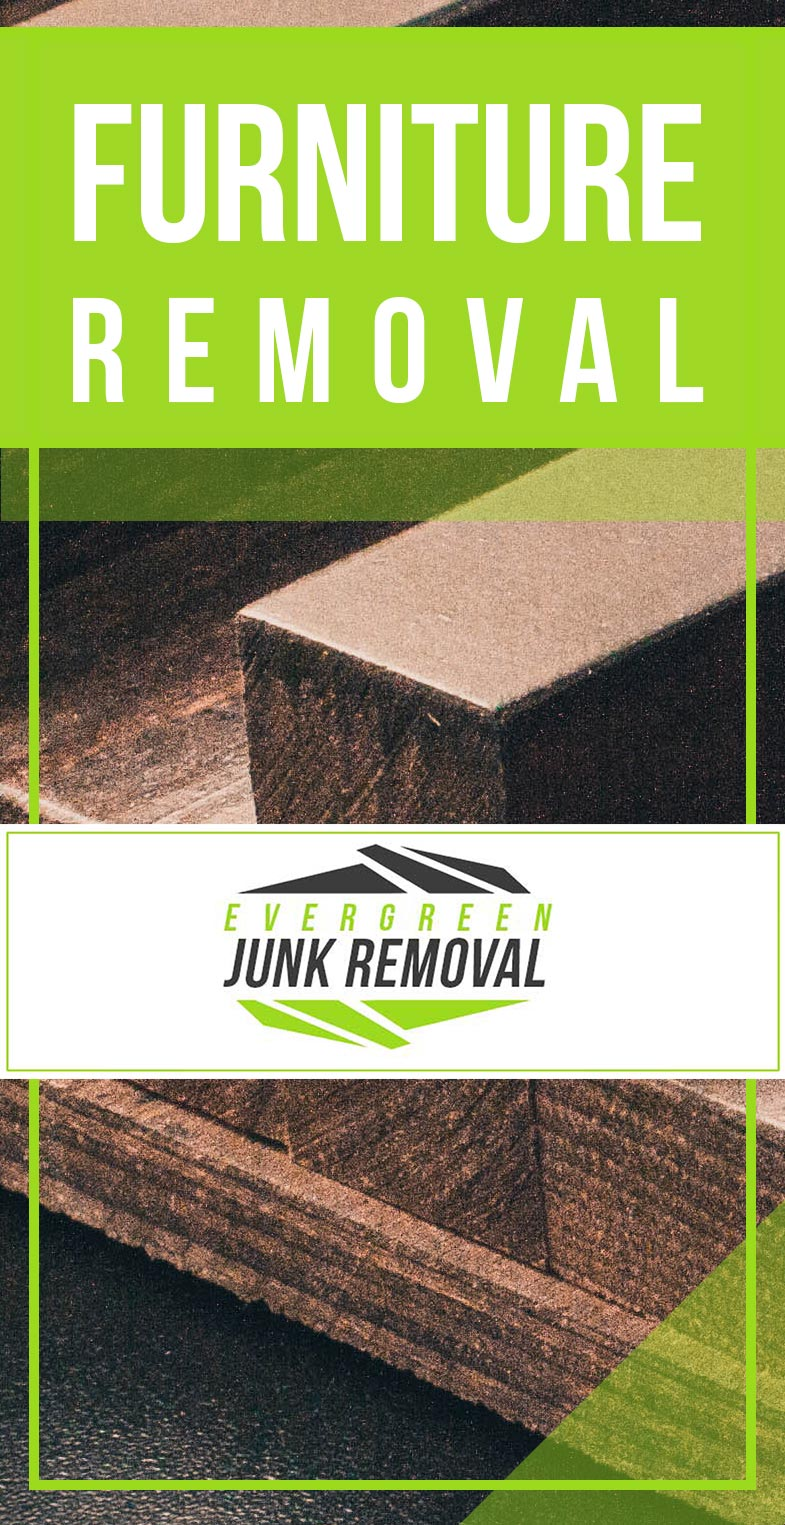 Junk Removal Hillsboro Pines Furniture Removal